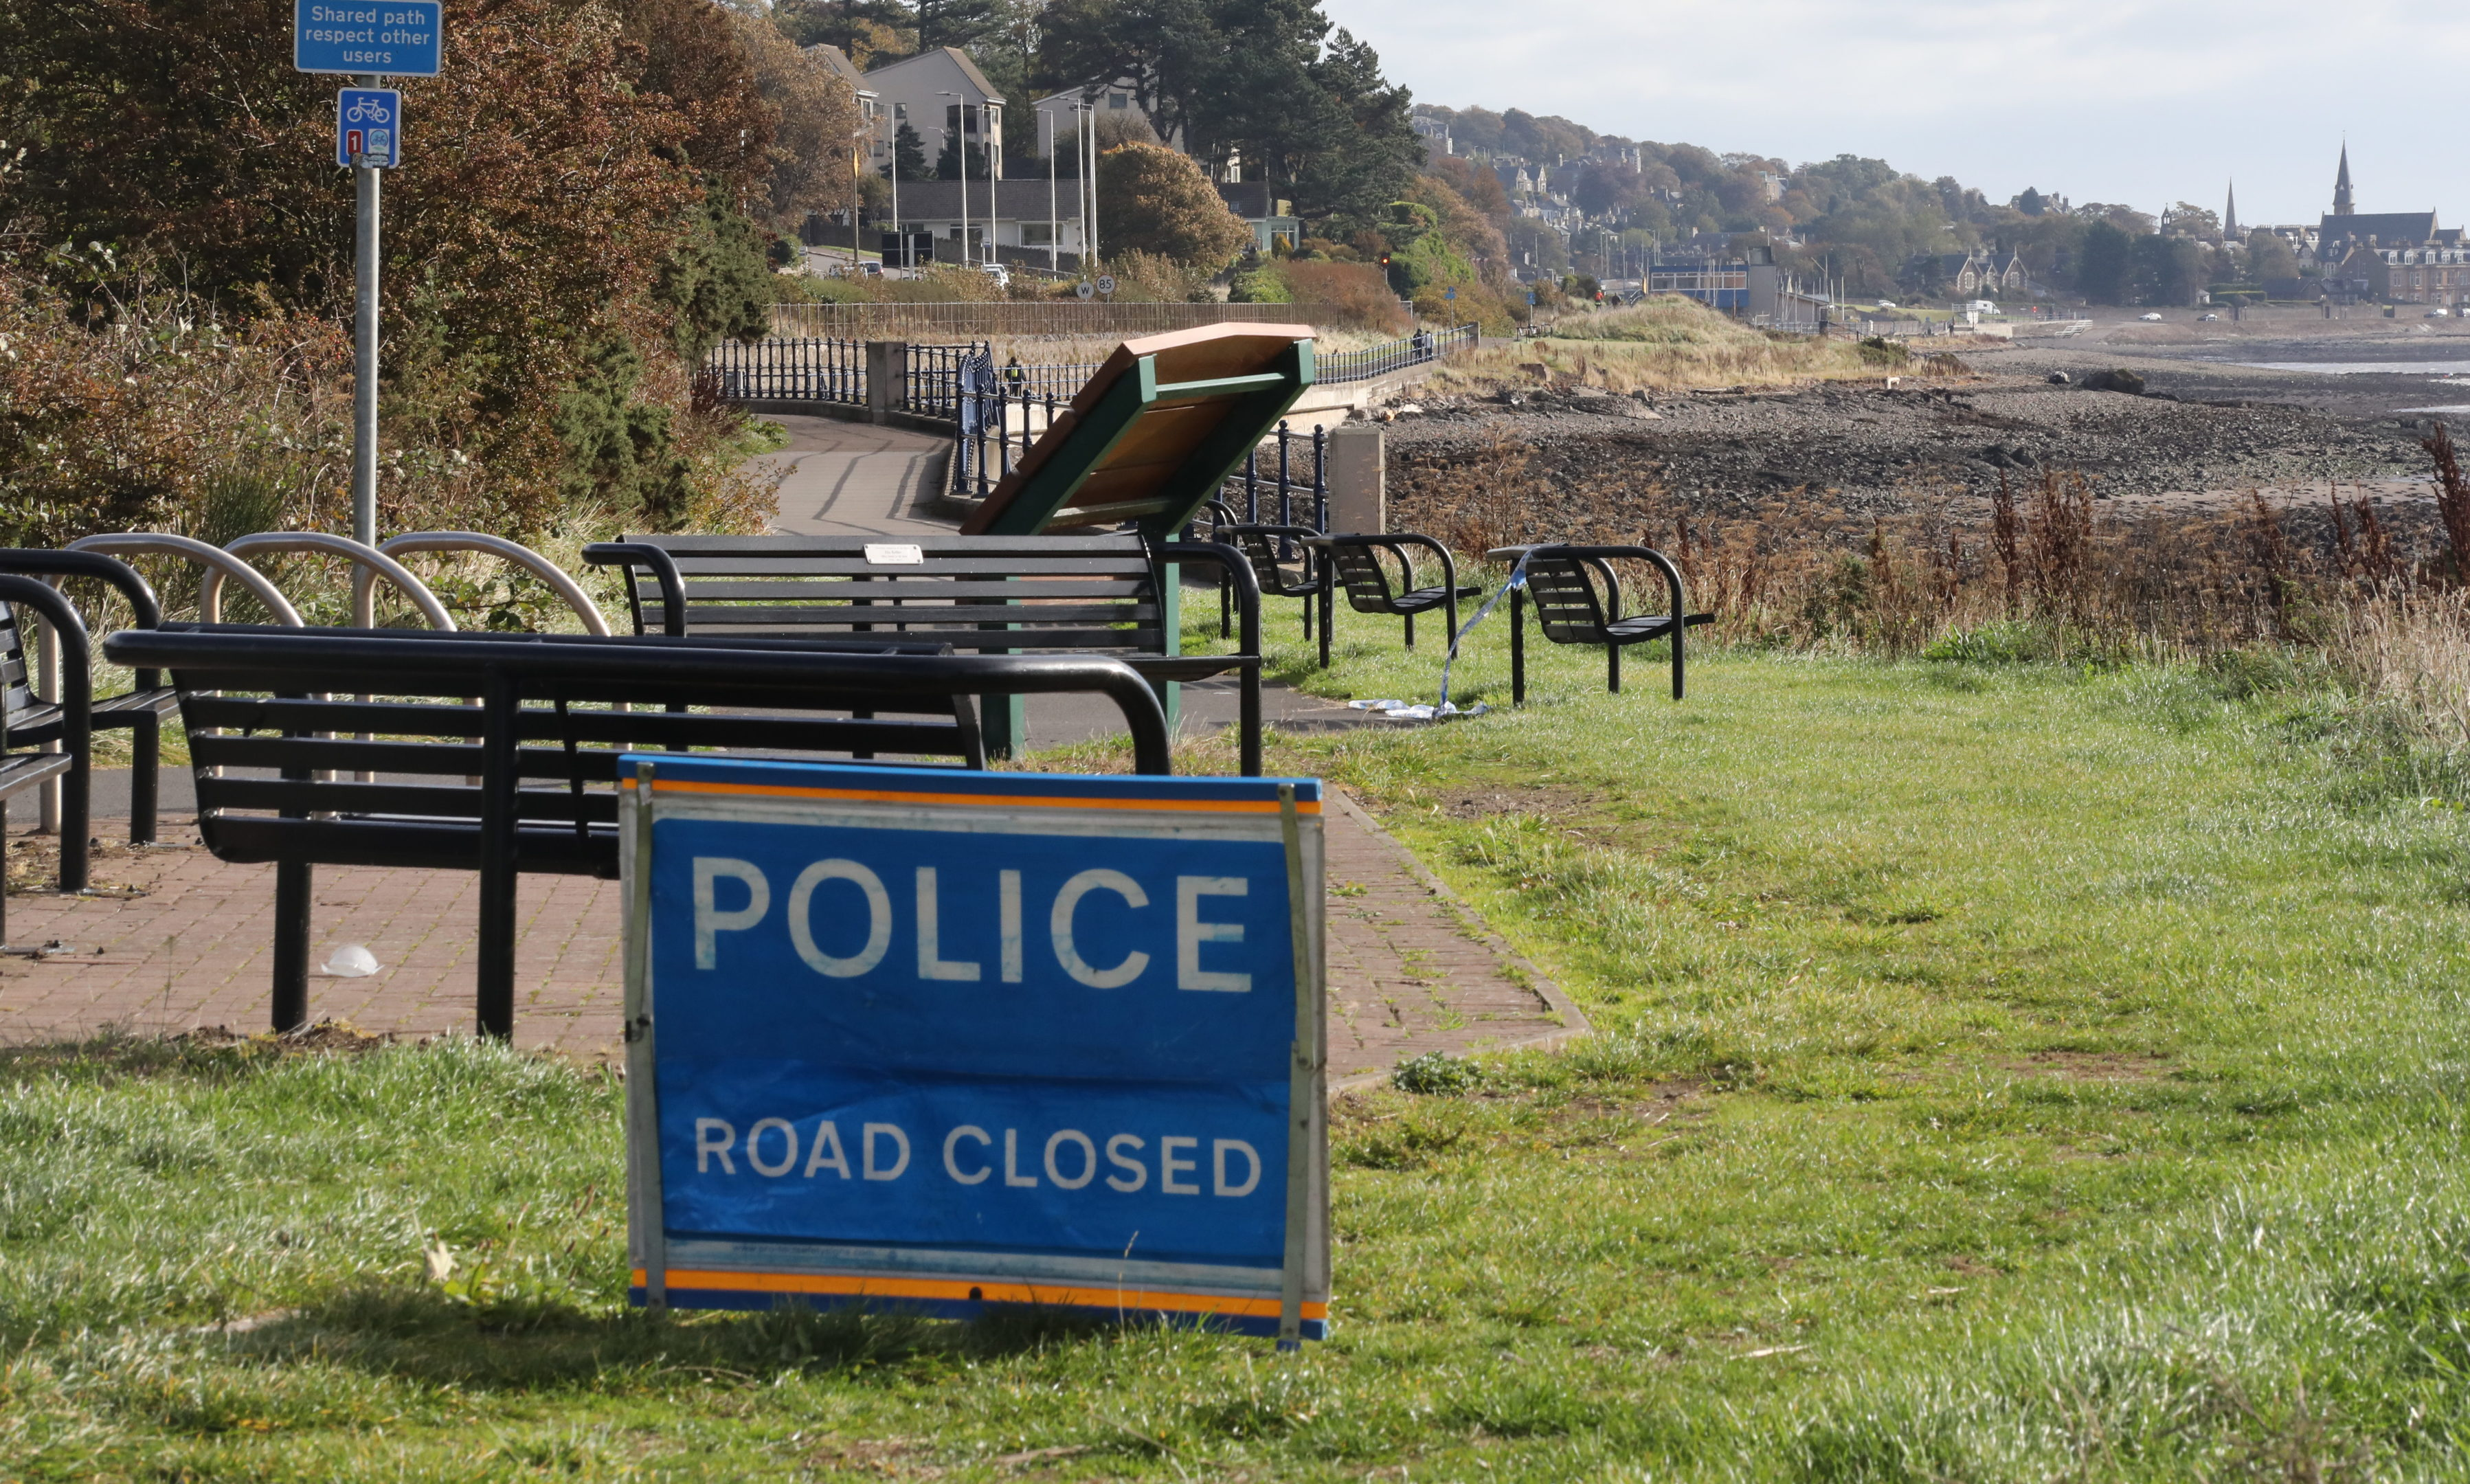 Police have closed the path from Stannergate to Broughty Ferry.